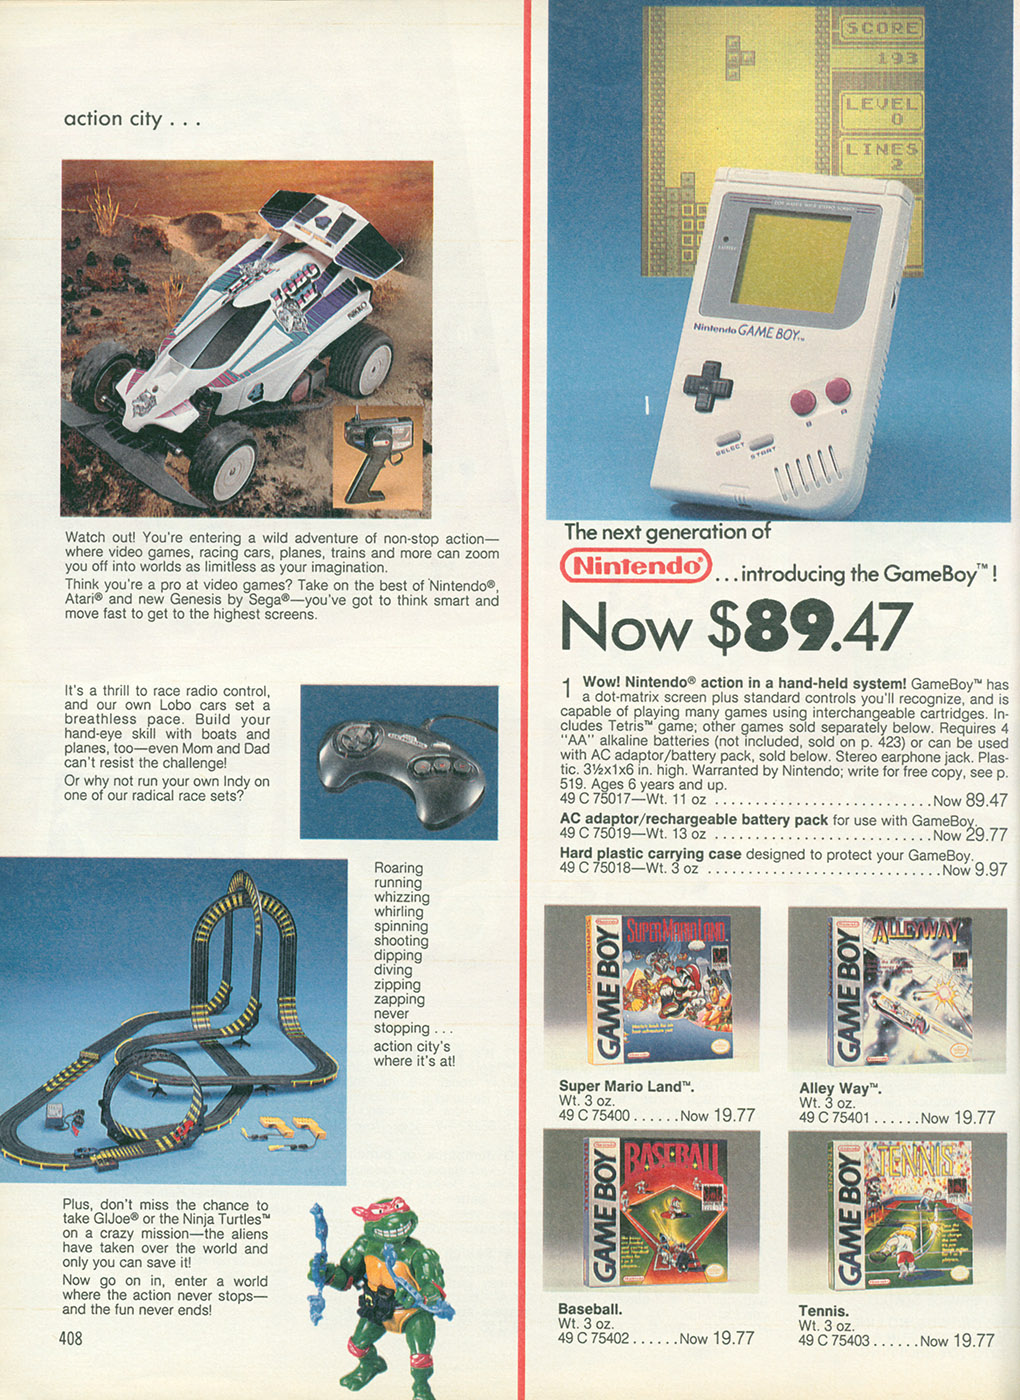 15 Top Toys on Your Christmas List … From the 1989 Sears Wish Book ...